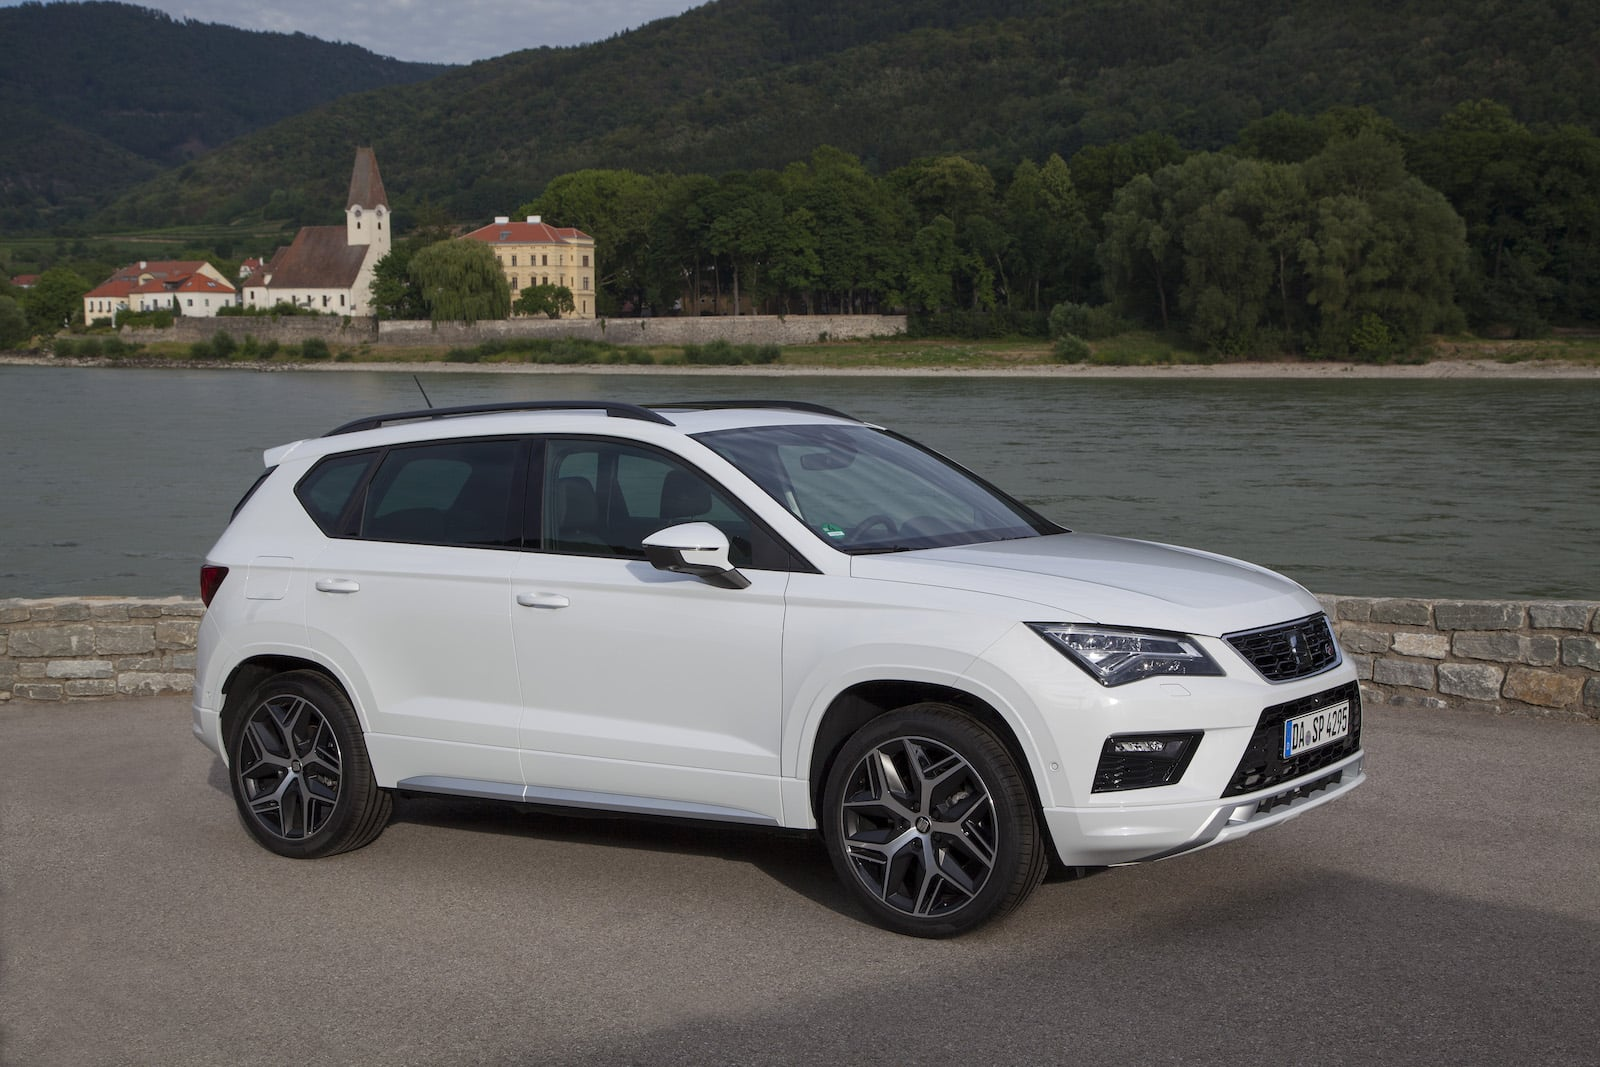 seat ateca fr der sportliche suv f r sportliche fahrer hackerott blog. Black Bedroom Furniture Sets. Home Design Ideas